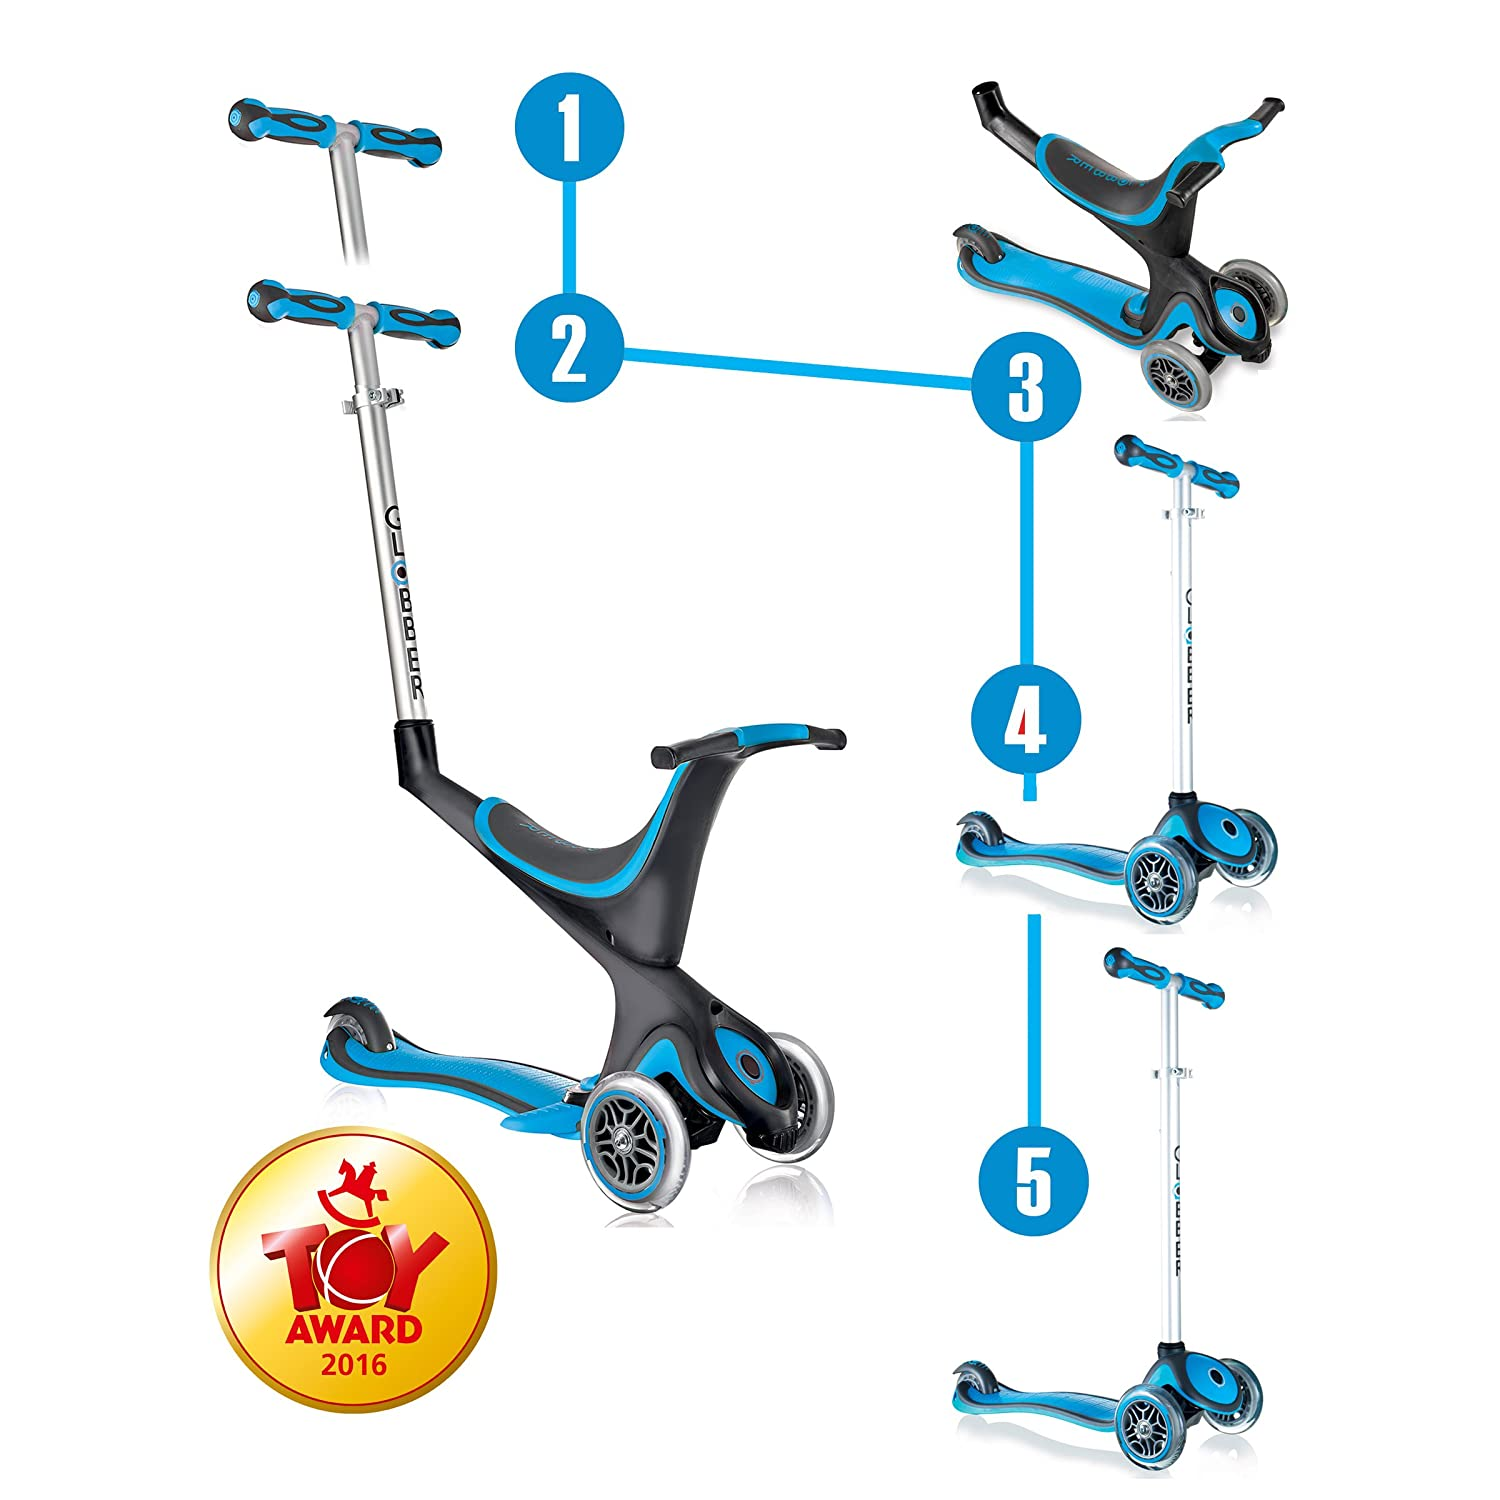 Globber MY FREE 5 in 1 Scooter (Light Blue) Globber Scooters 455-106